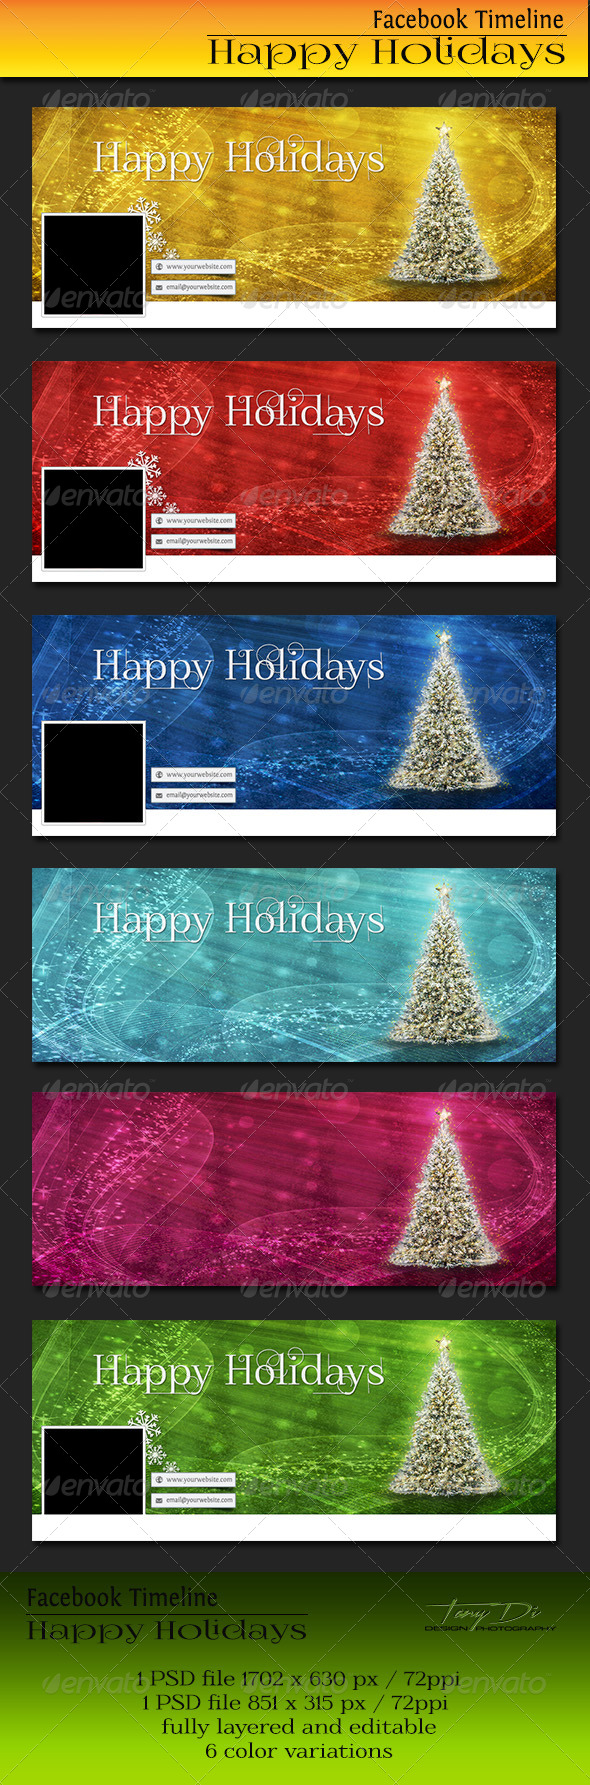 GraphicRiver Facebook Timeline Cover Happy Holidays 6445982